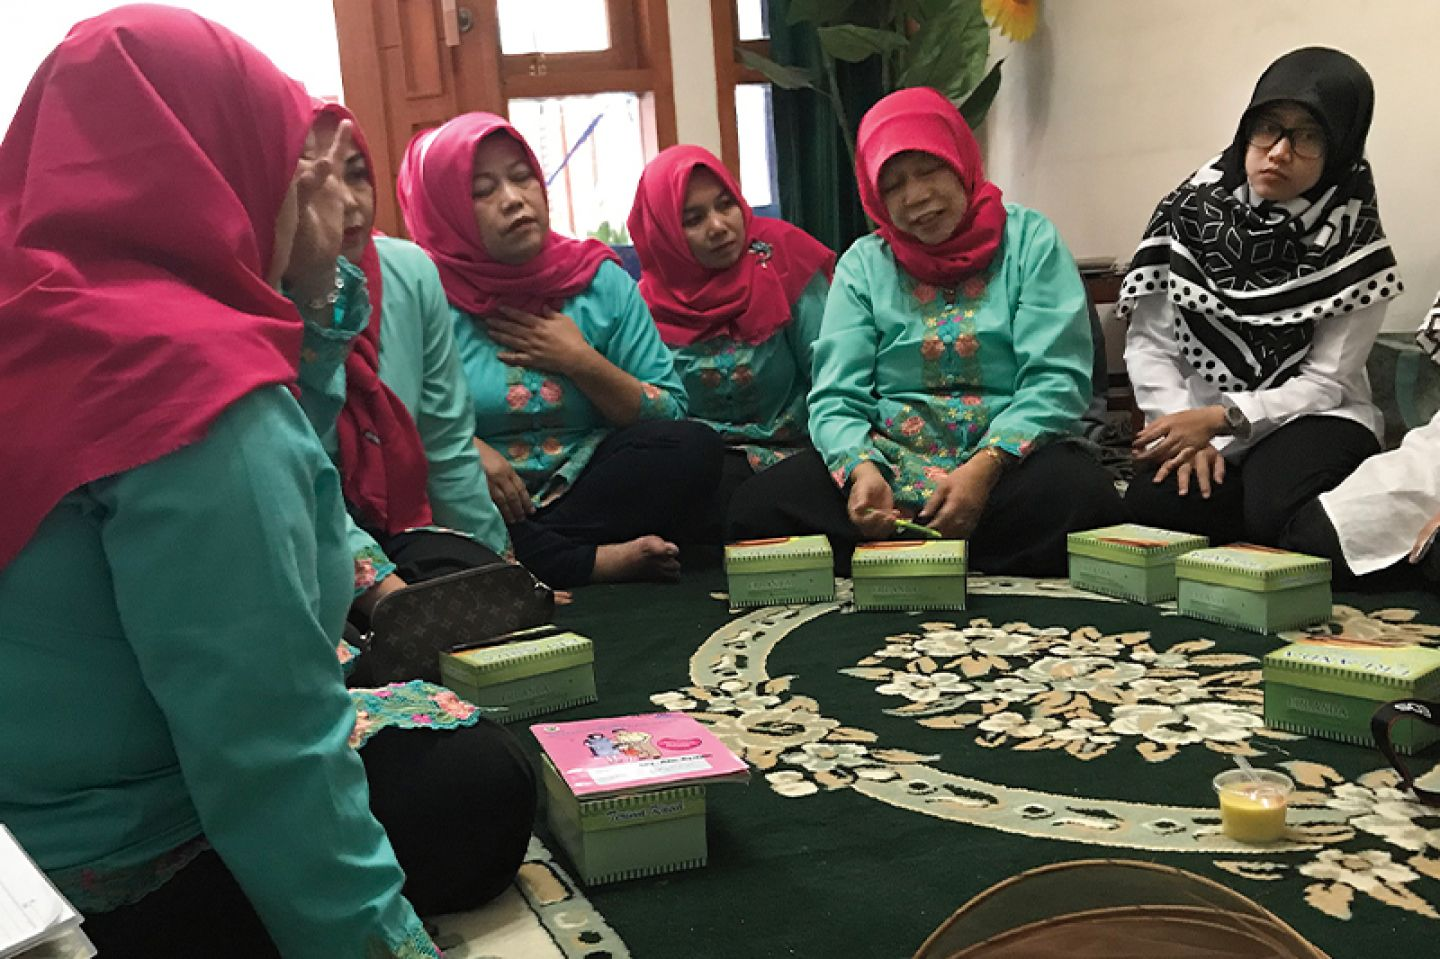 Community health workers in Indonesia